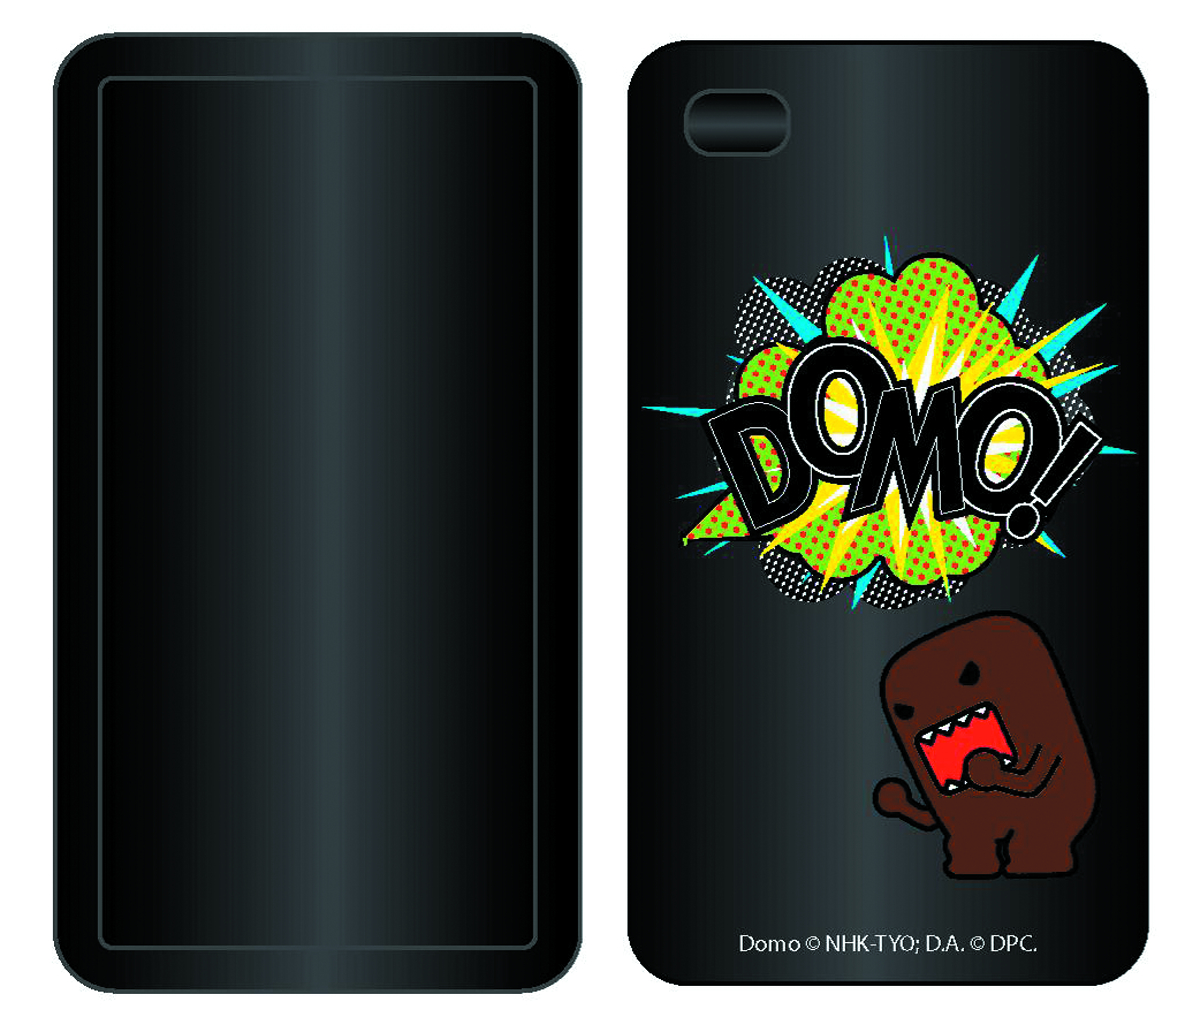 ANGRY DOMO FARTING SILICONE SMARTPHONE CASE